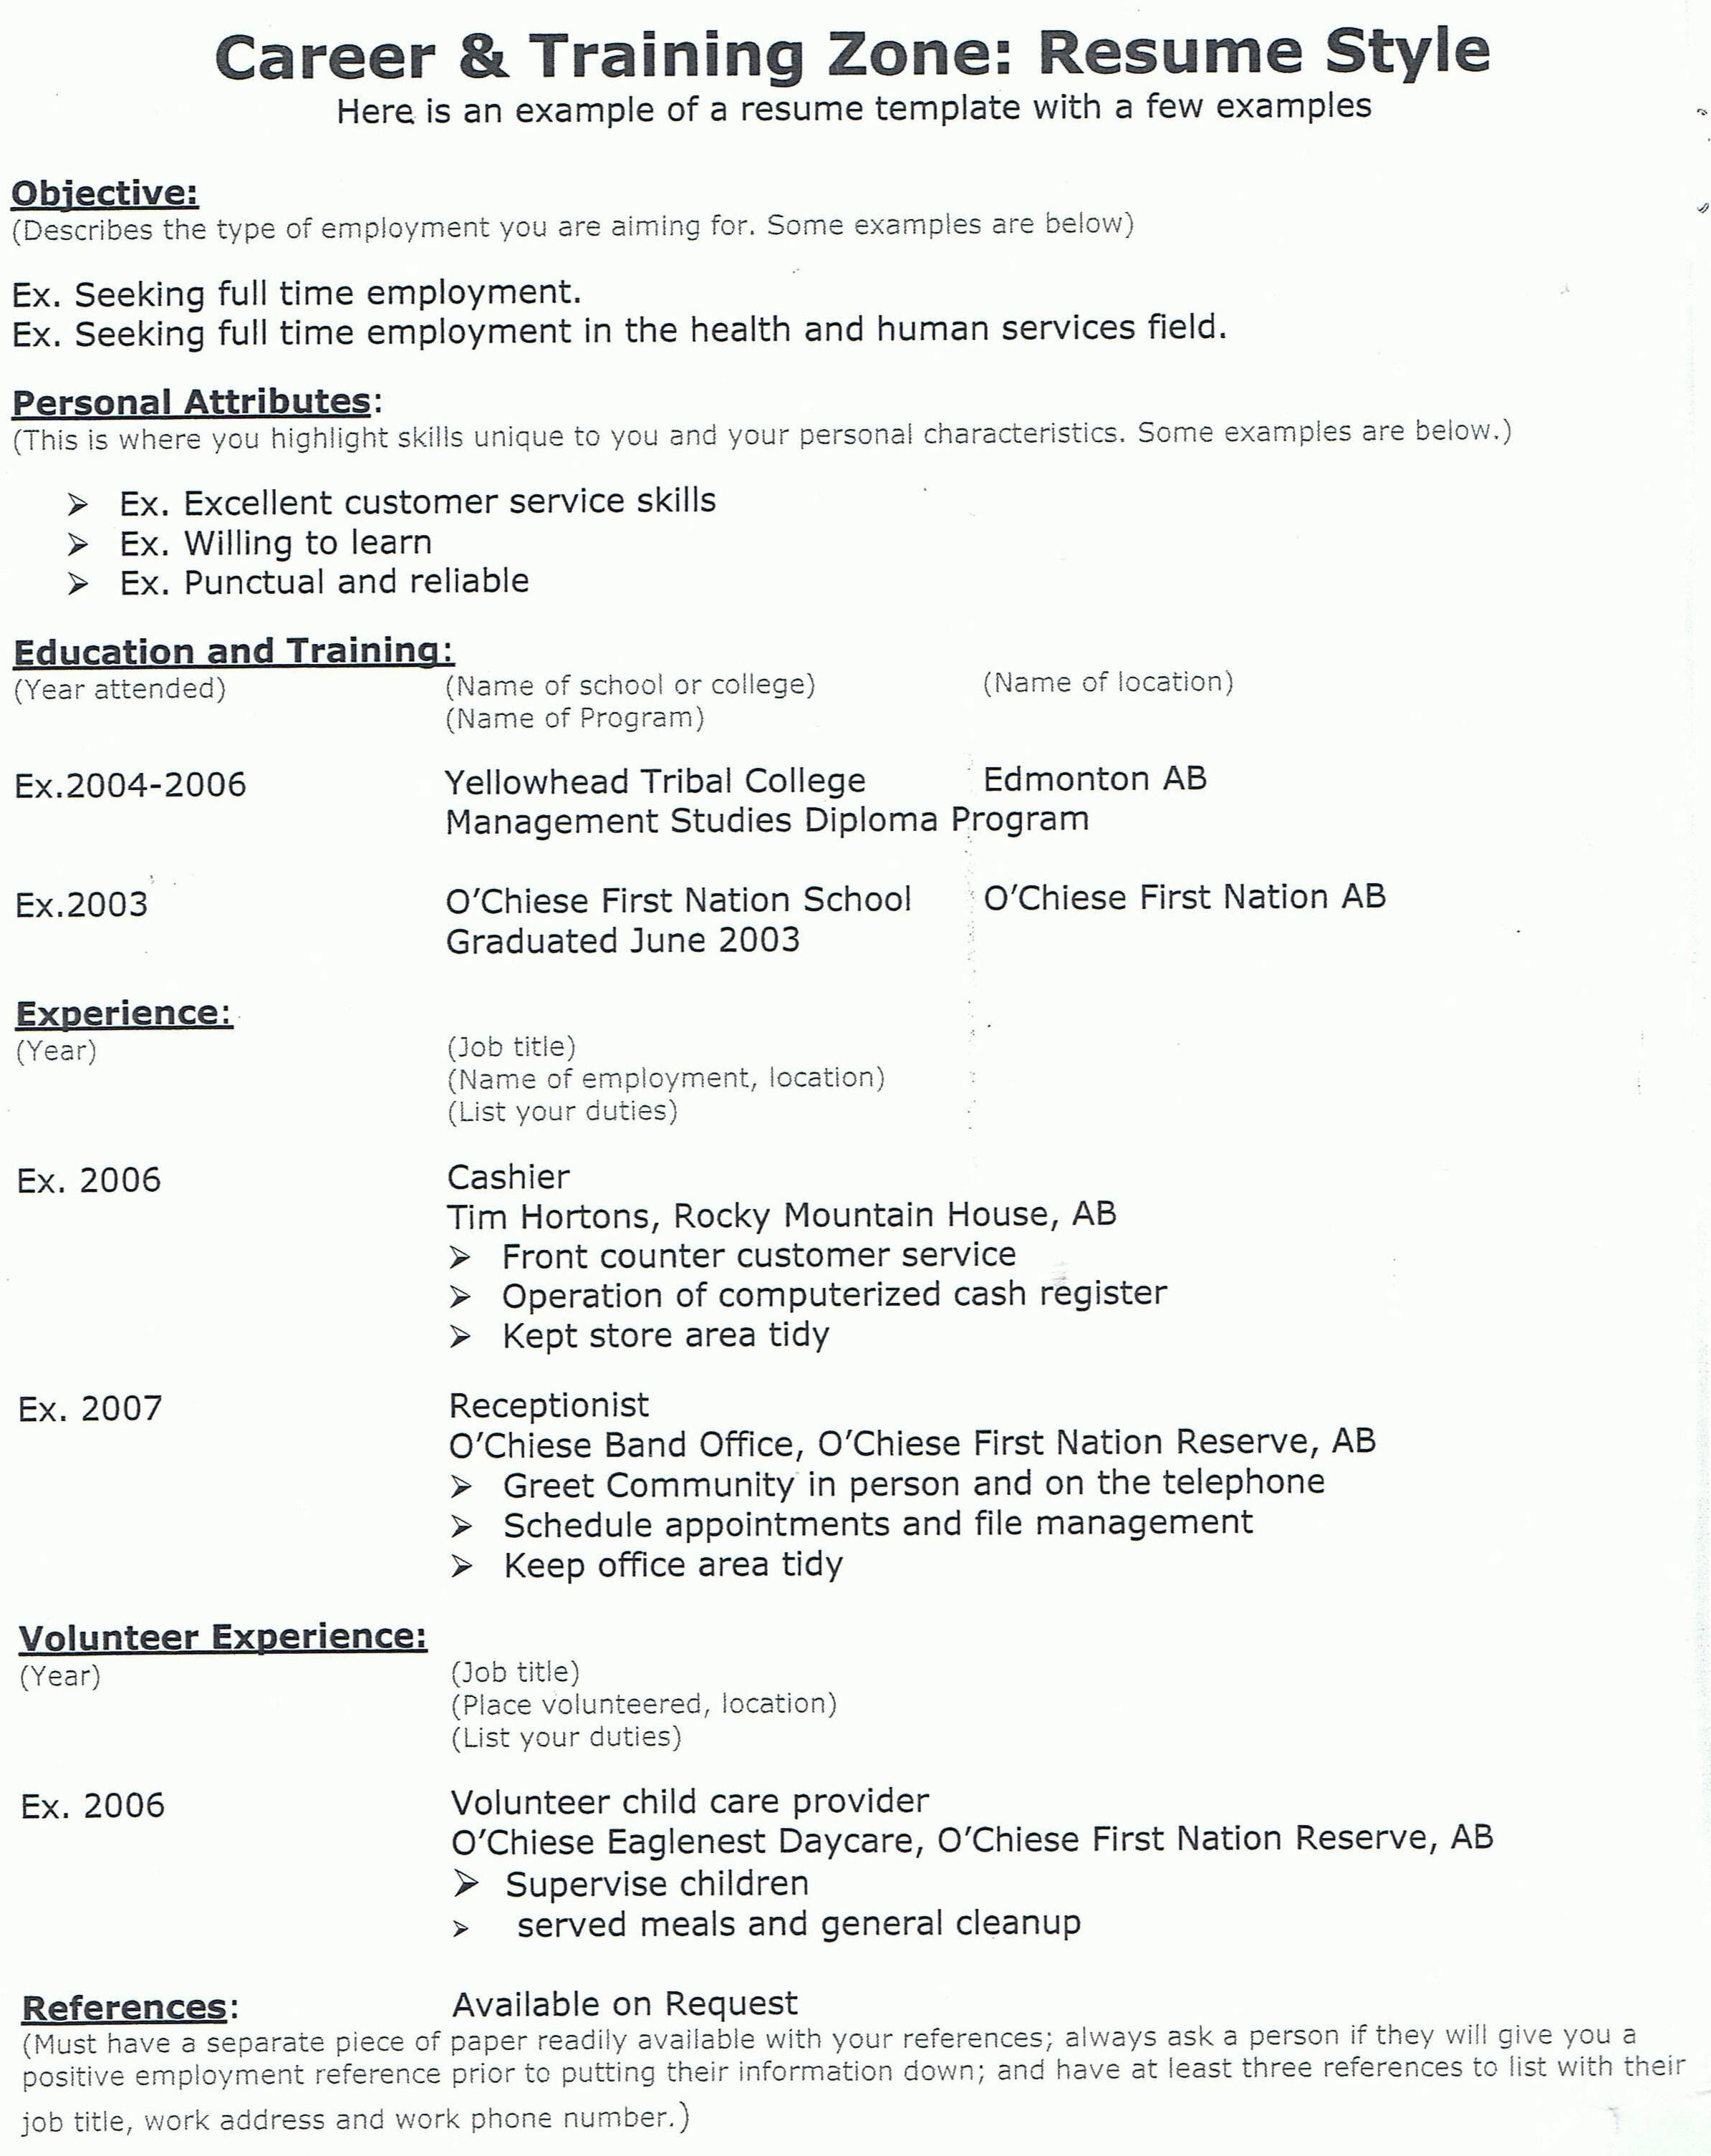 How To Write A Resume Example Sample Resume Examples Free Sample Letter And Cover Letter Hd Free Resume Examples Resume Good Resume Examples